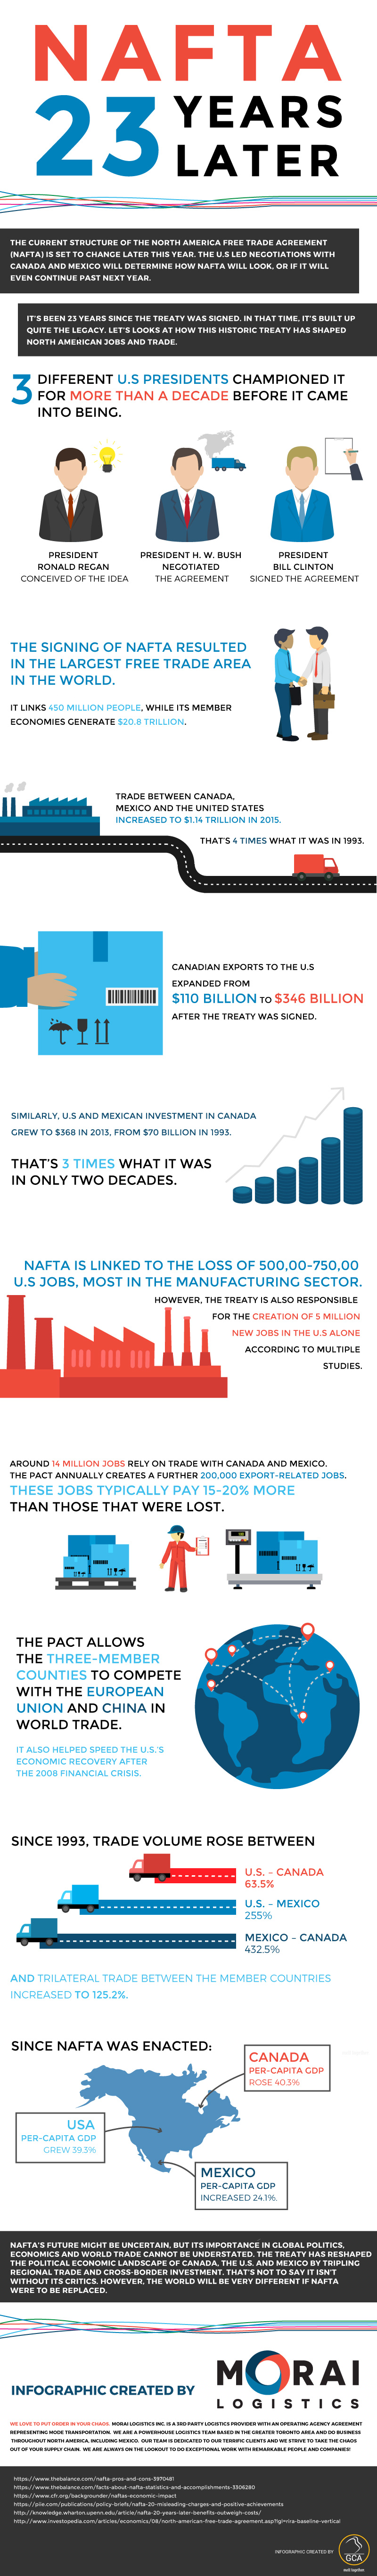 morai-logistics-nafta-23-years-later